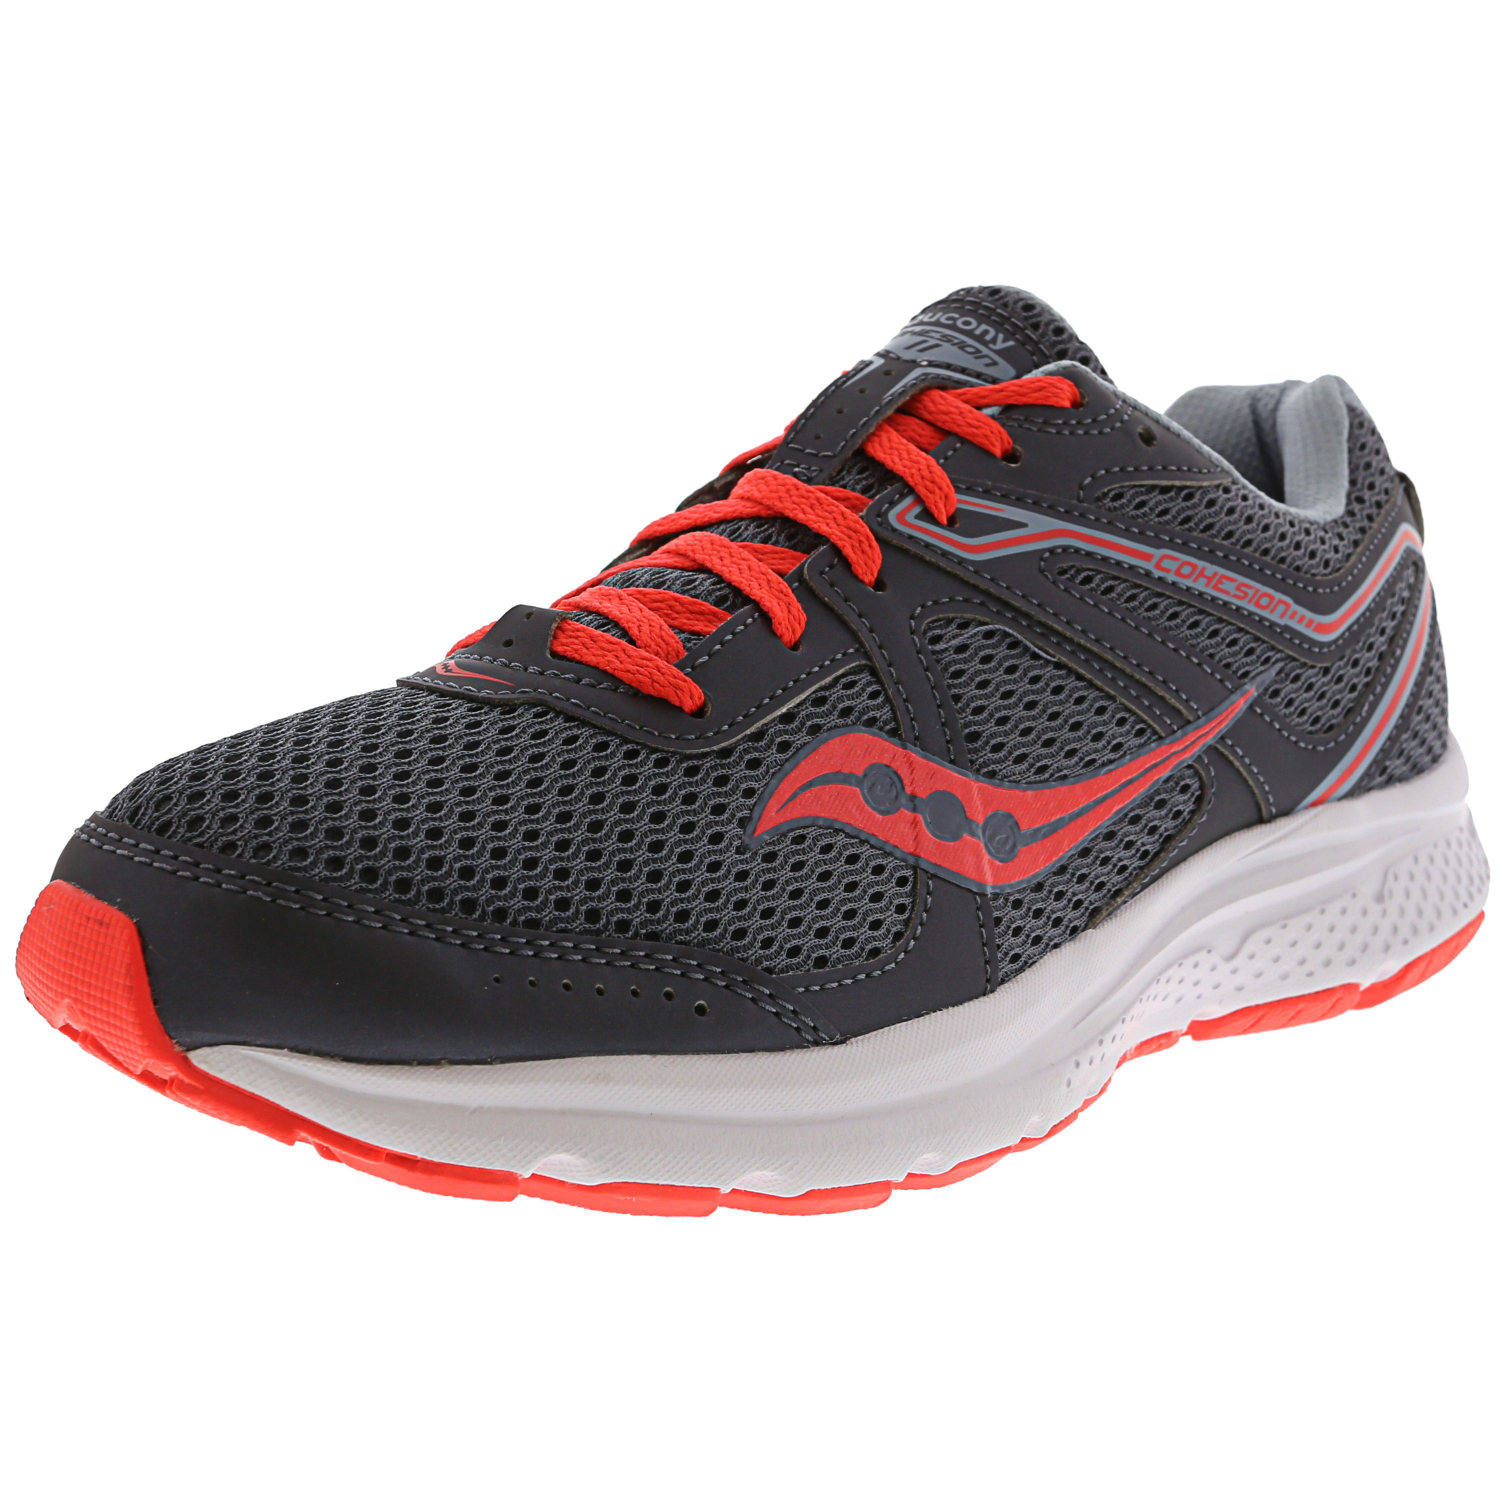 d2b50120 Details about Saucony Women's Grid Cohesion 11 Ankle-High Mesh Running Shoe